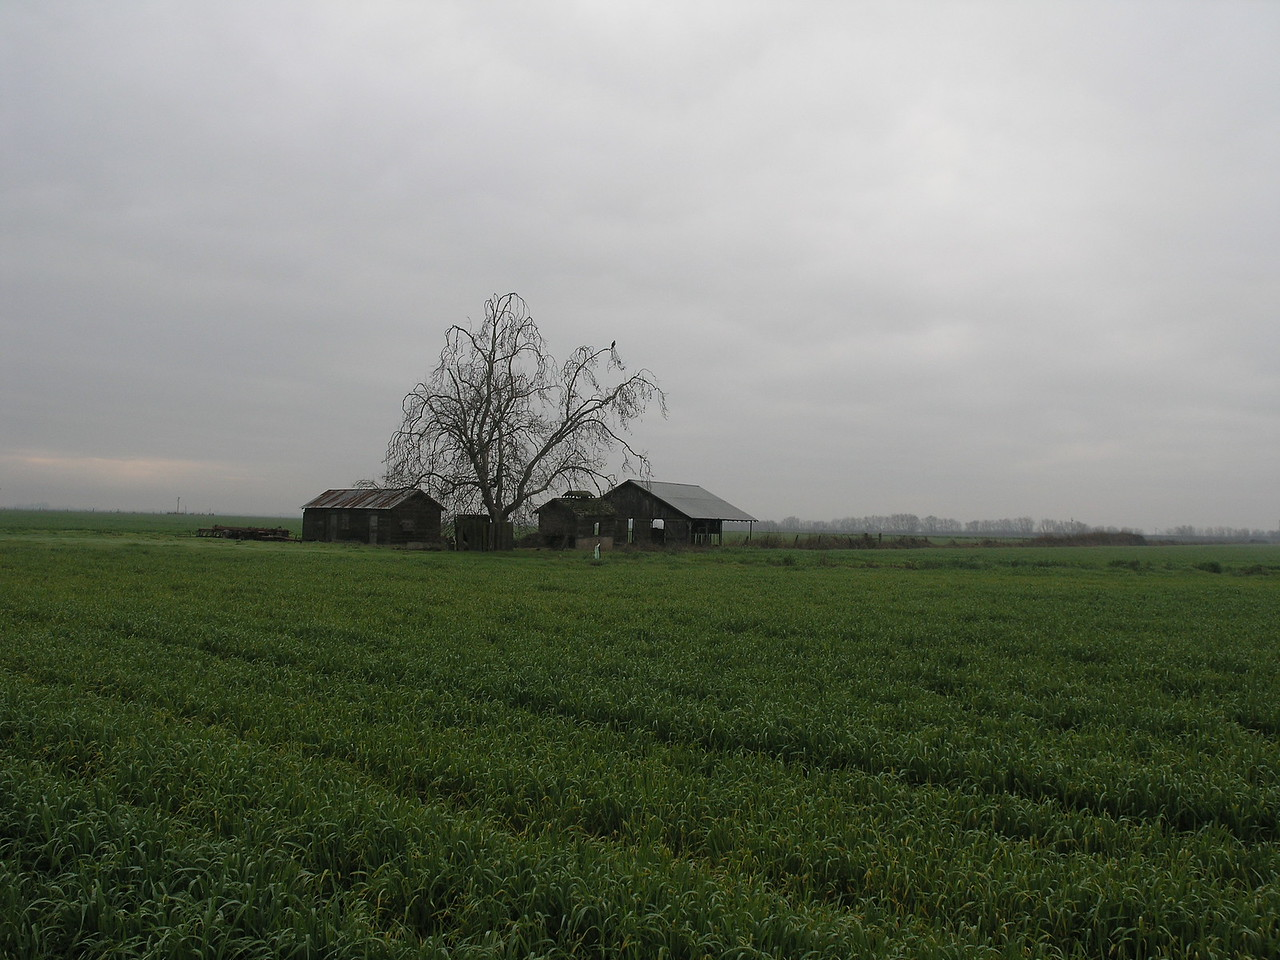 I decided to take a foggy Saturday and go take pictures. This barn and oak was just East of Modesto.